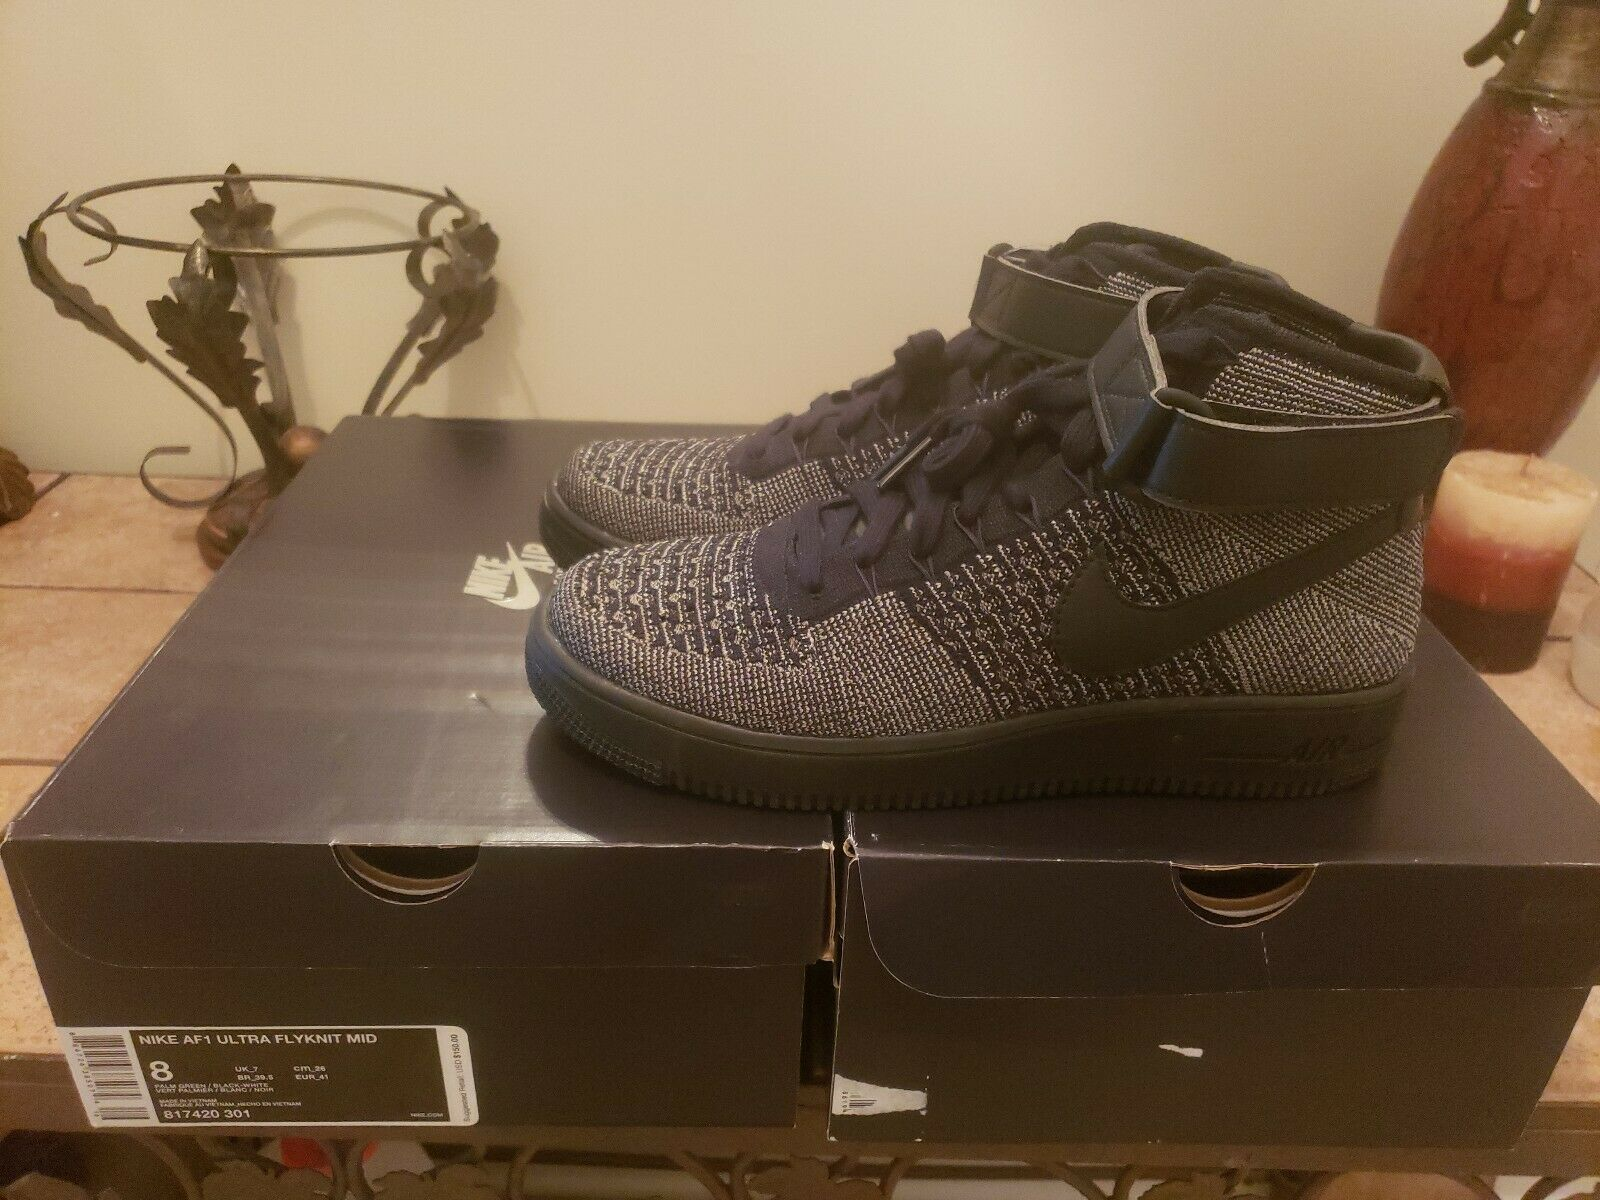 Limited Nike Air Force 1 Ultra Flyknit Mid Black Palm 817420-301. Sz.9. New